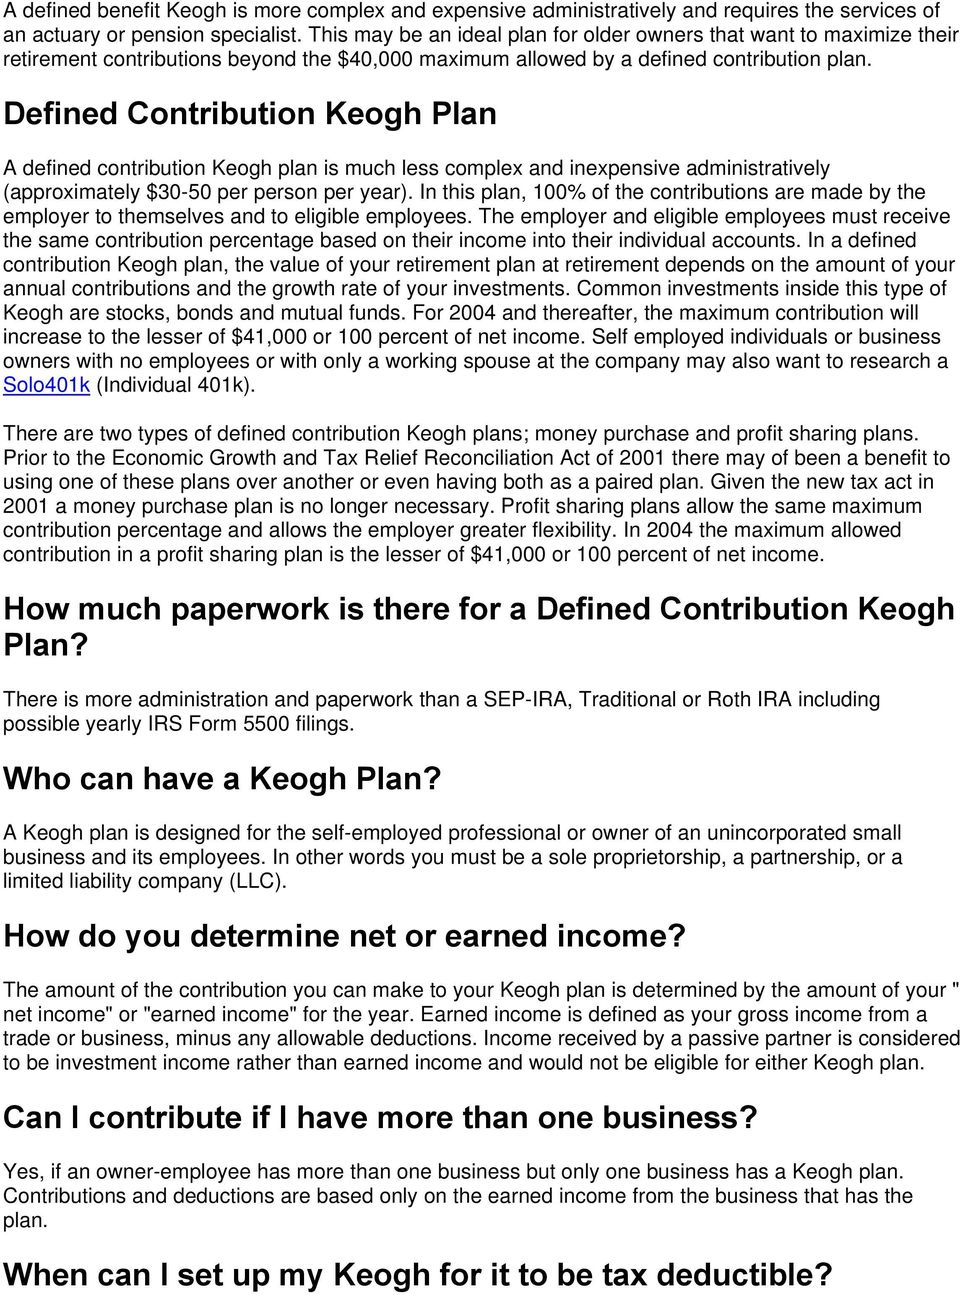 Defined Contribution Keogh Plan A defined contribution Keogh plan is much less complex and inexpensive administratively (approximately $30-50 per person per year).